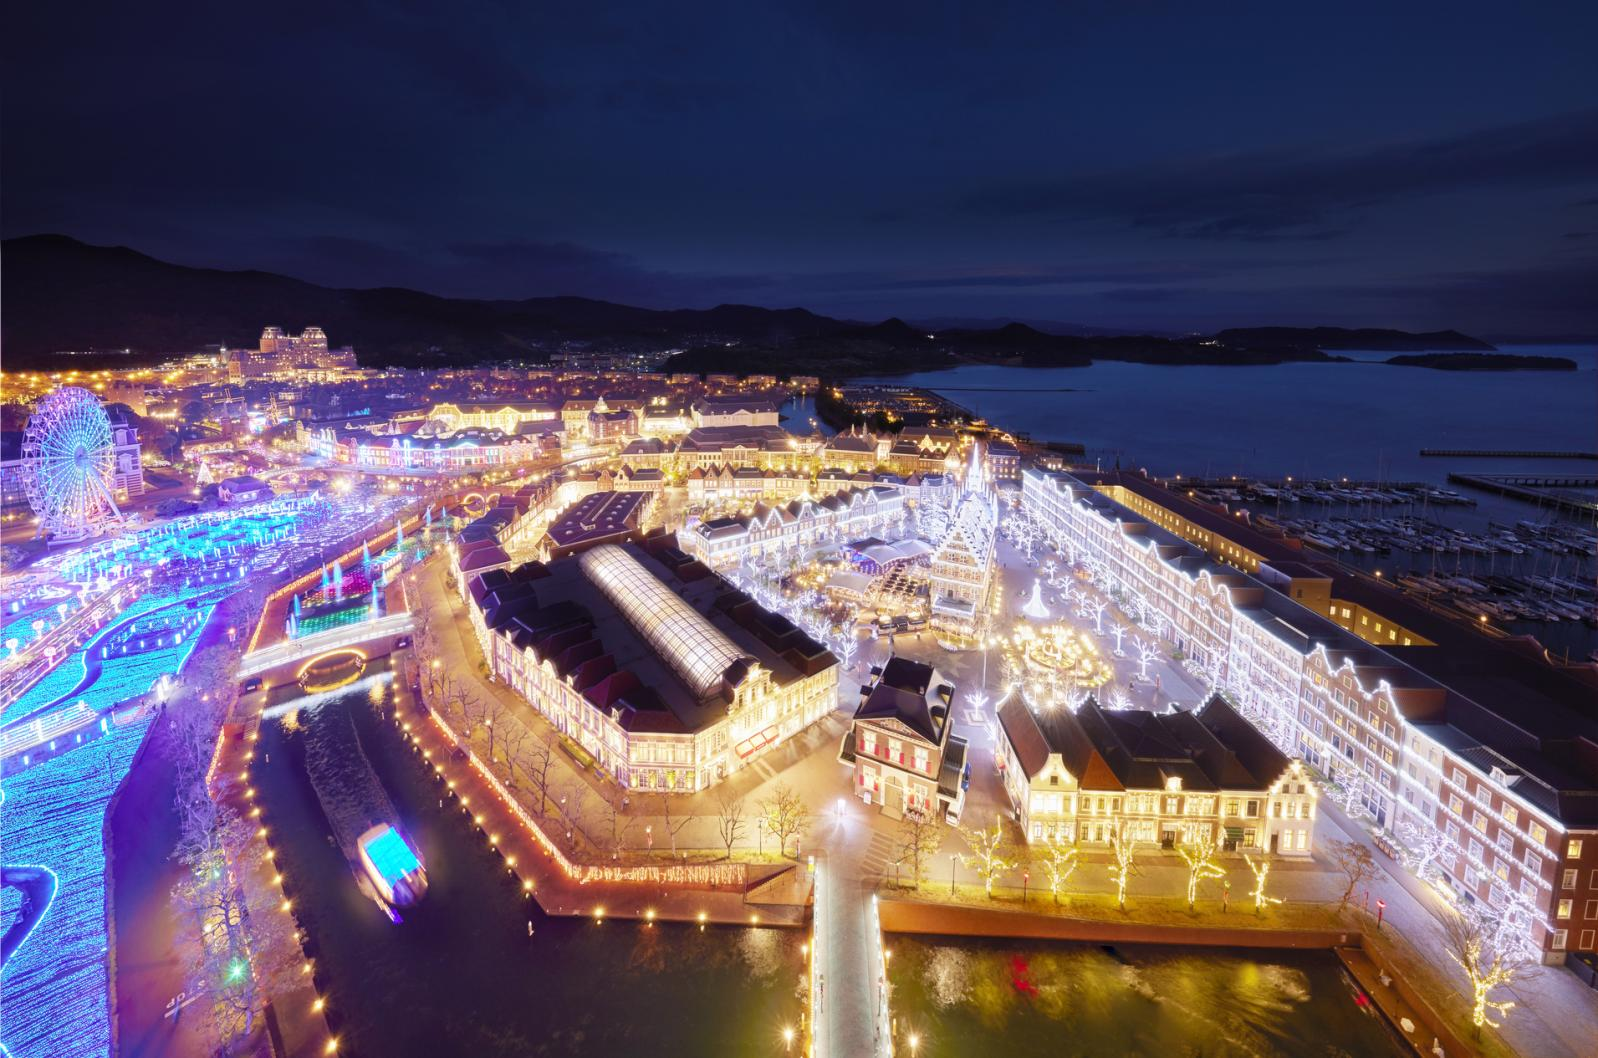 Huis Ten Bosch - Kingdom of Light-9